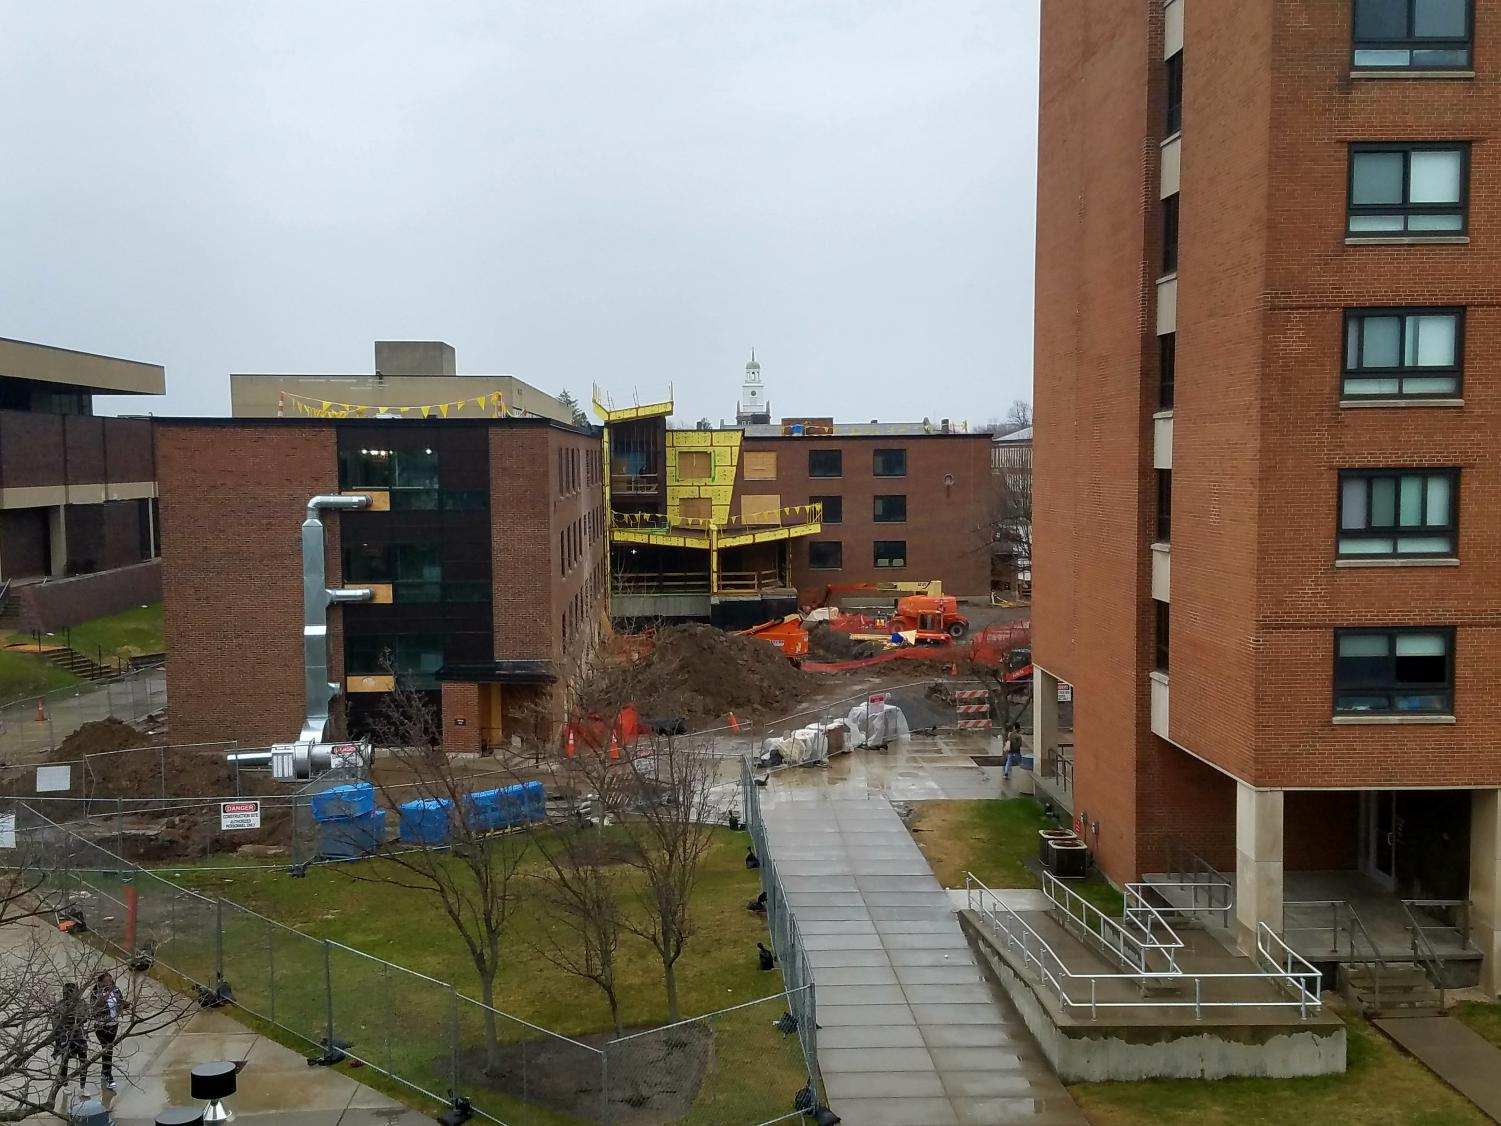 Construction is underway for Bishop Hall, to create new living quarters for Honor students.